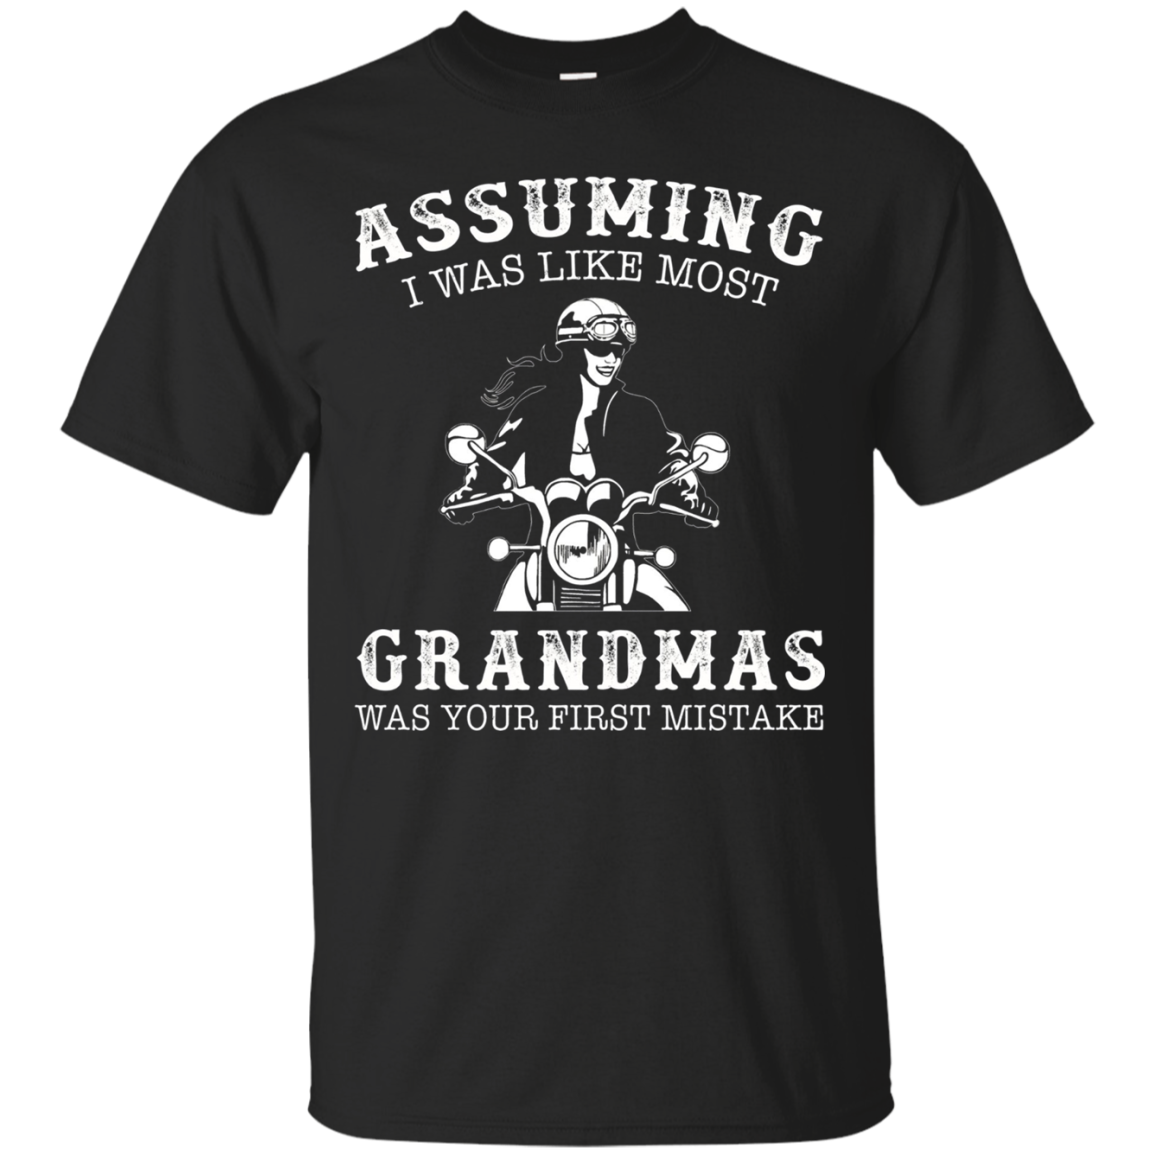 Assuming i was like most grandmas was first mistake - biker